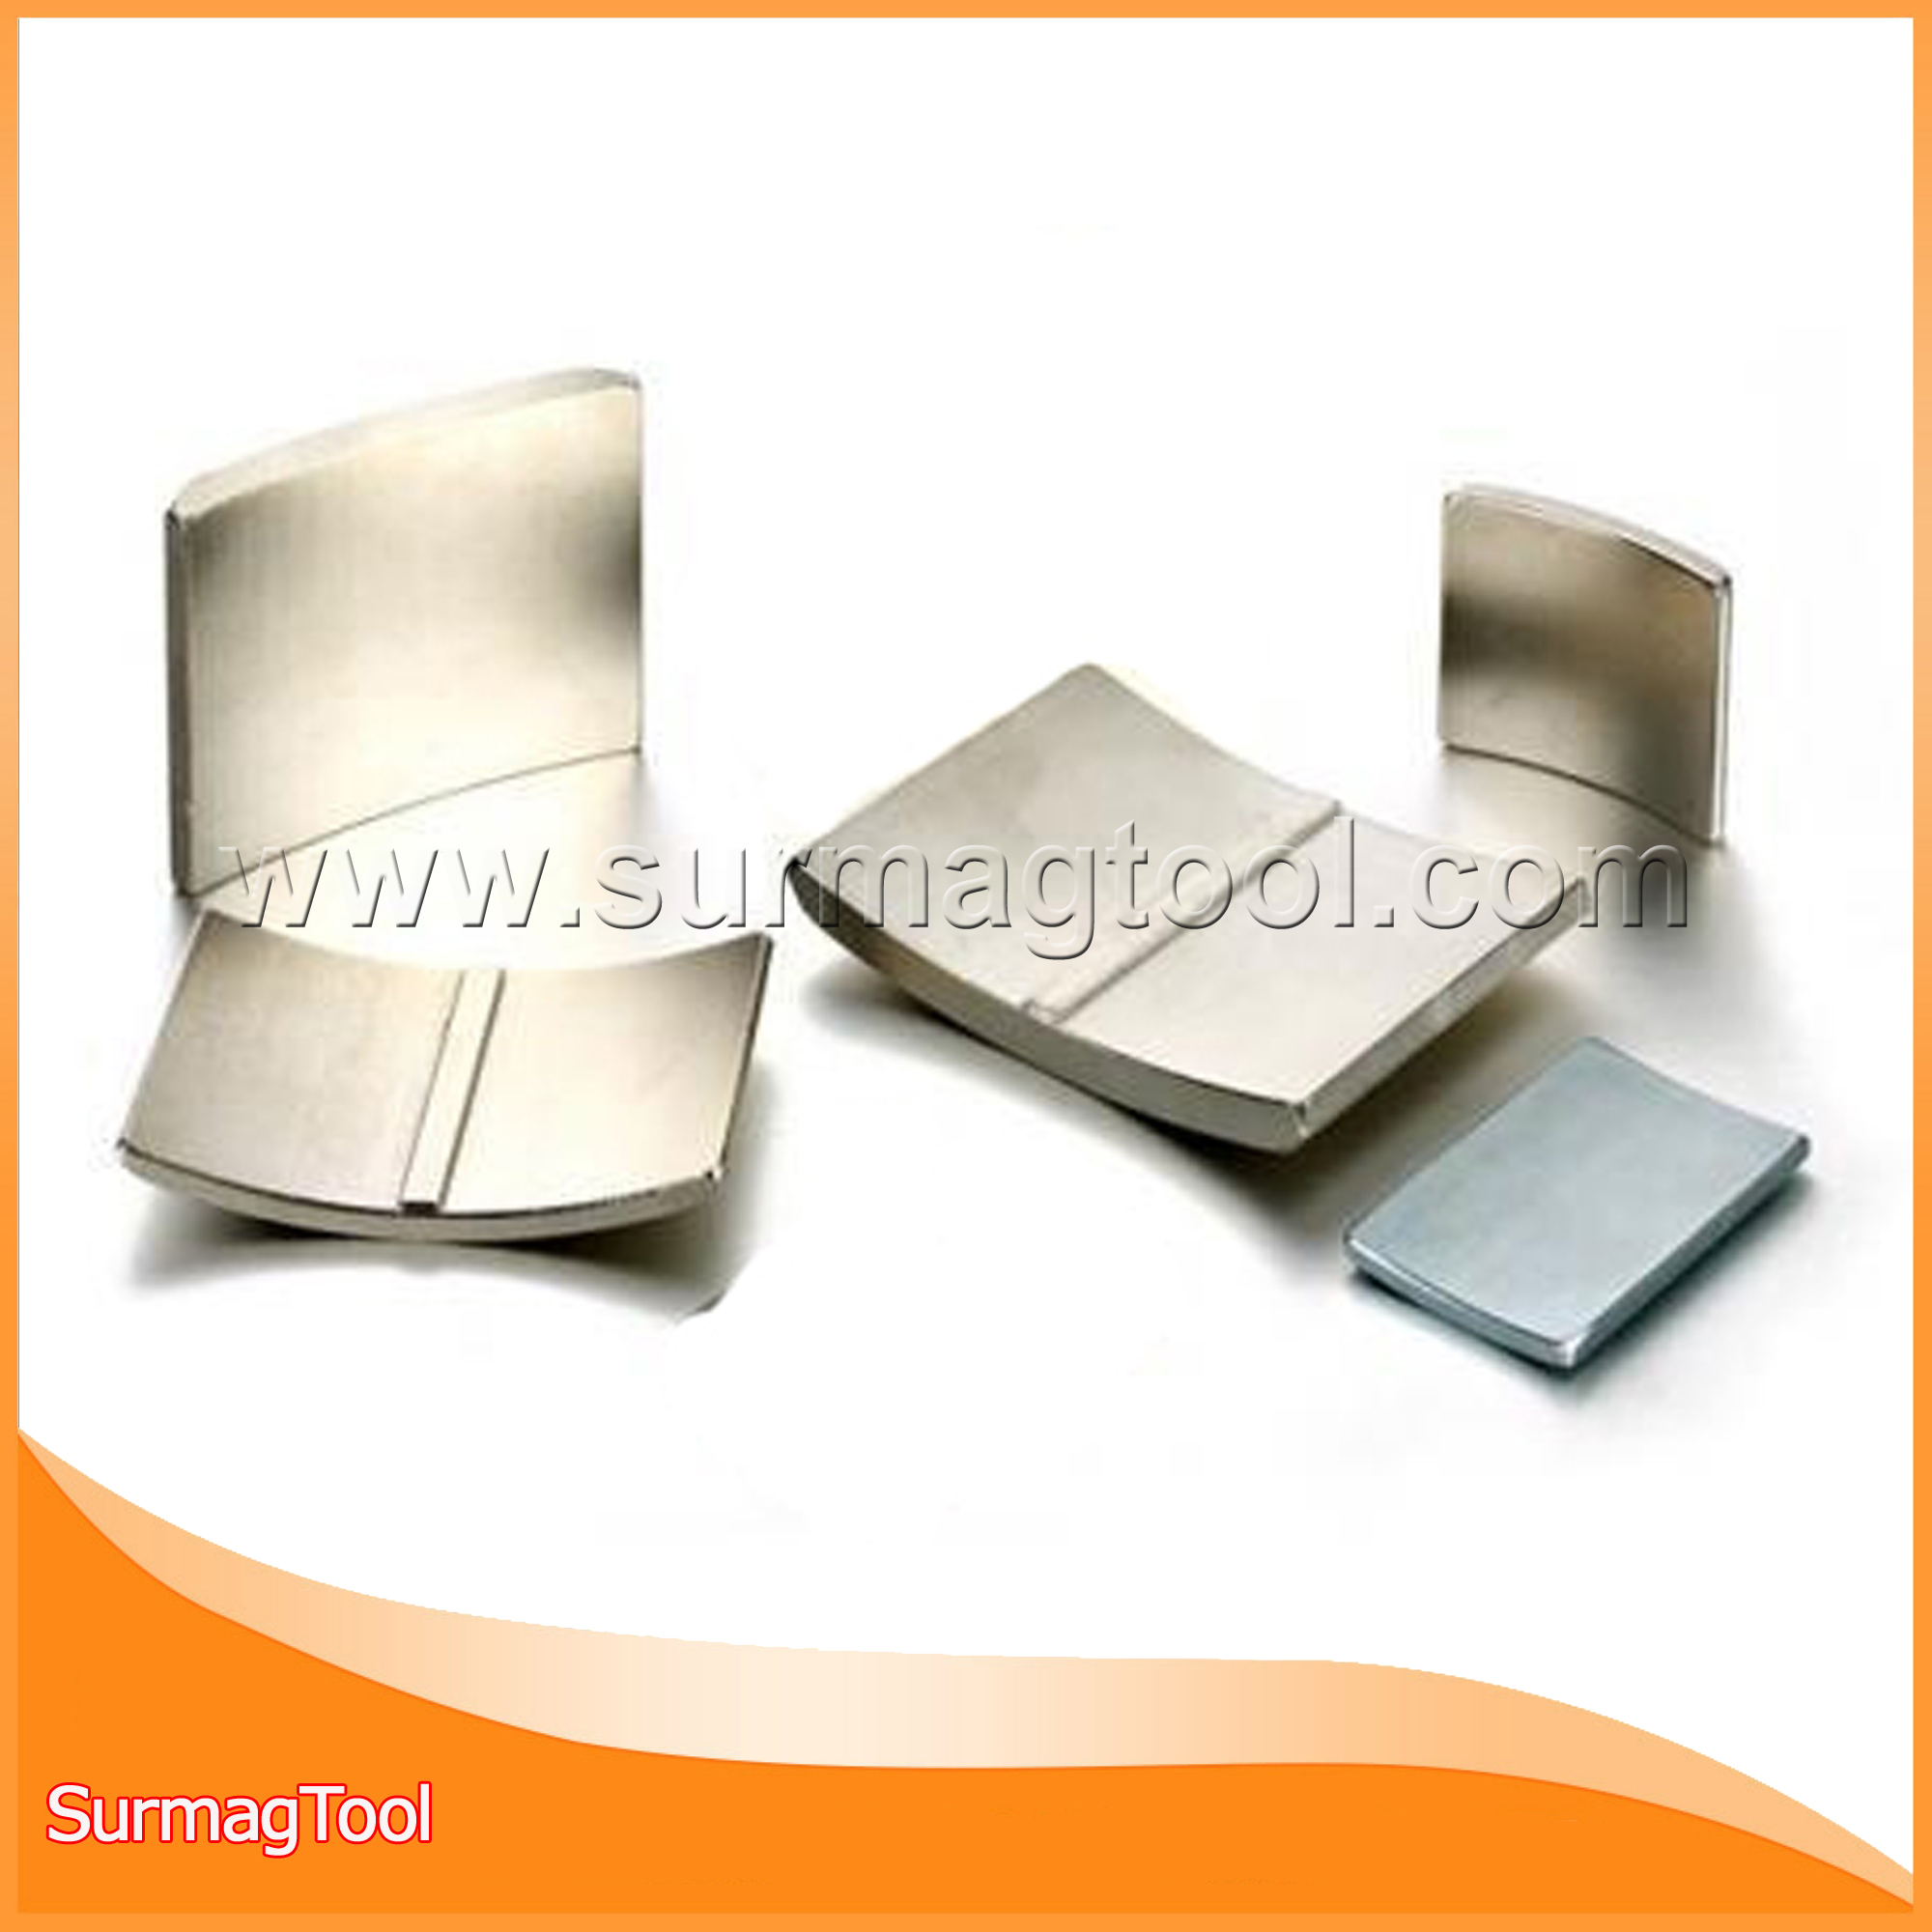 Segment ni coating permanent ndfeb magnets